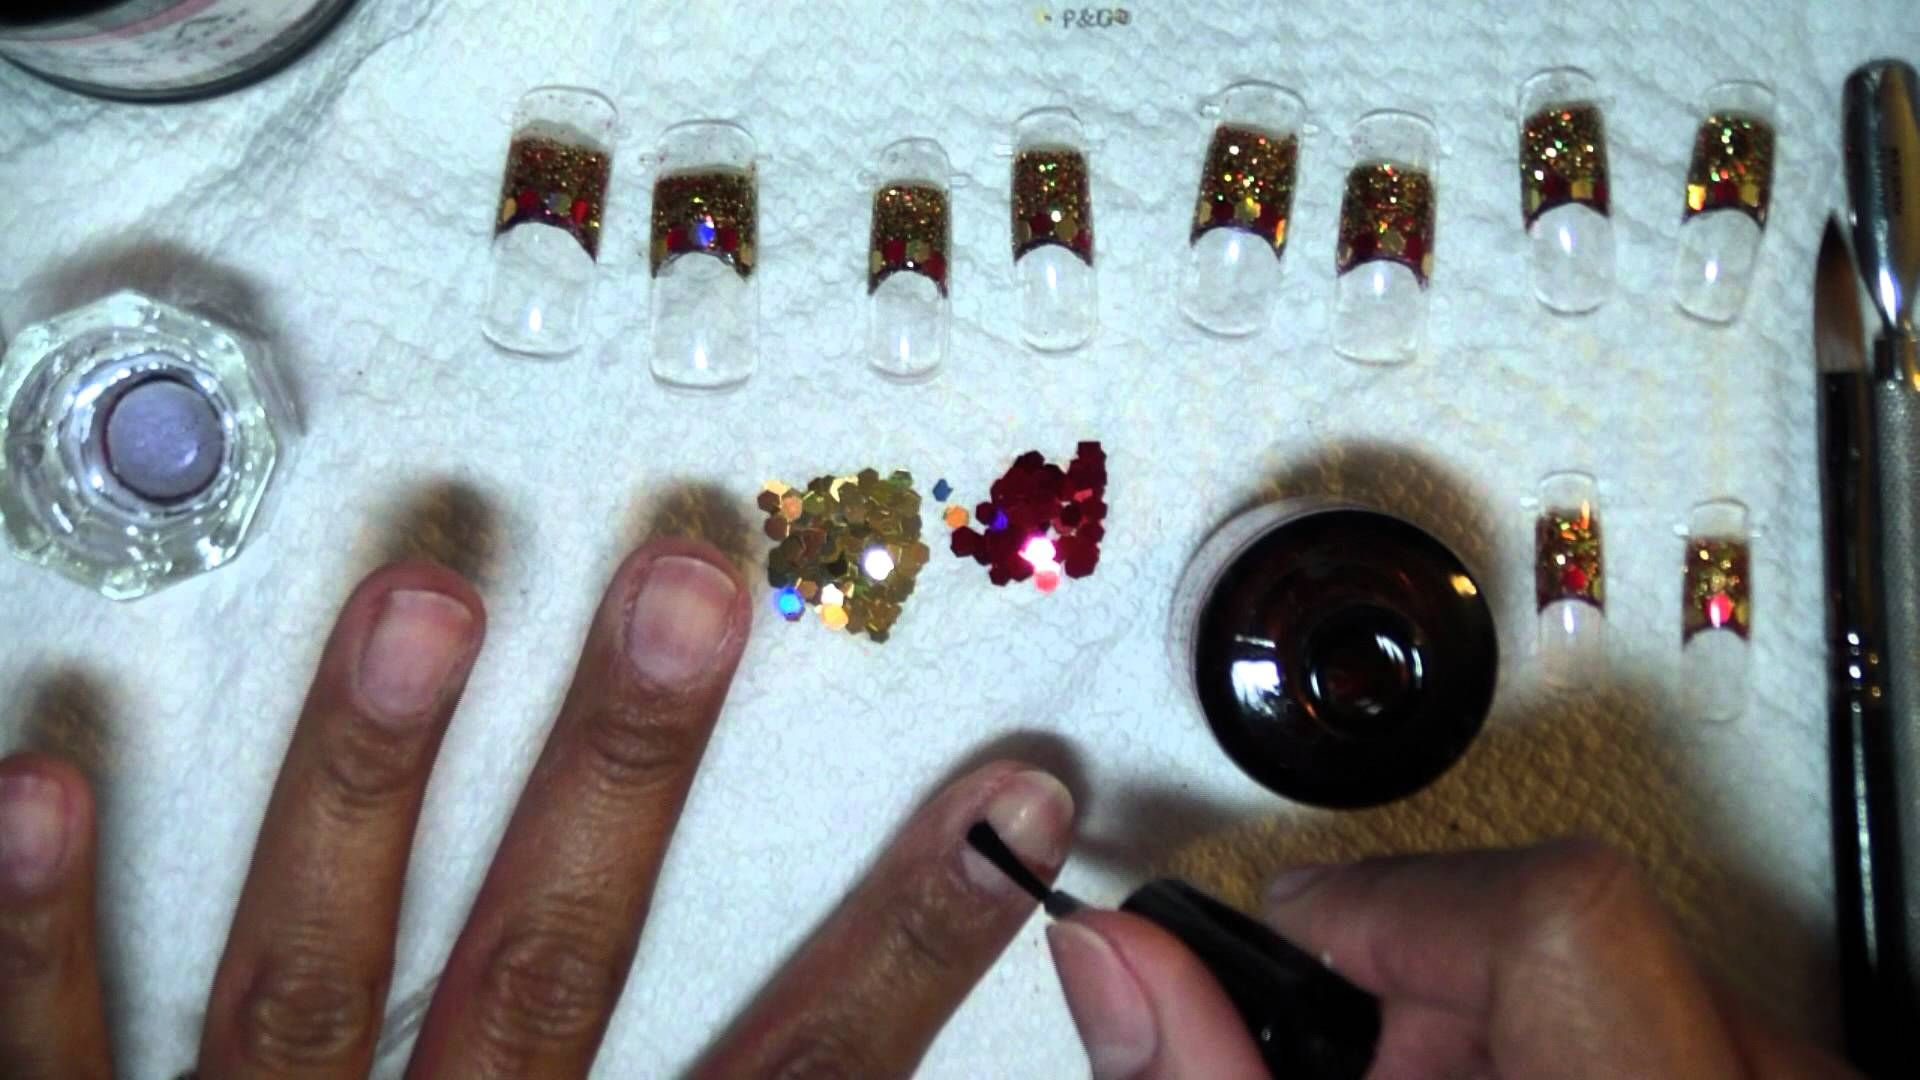 Acrylic nail design using dual forms lots of glitter and